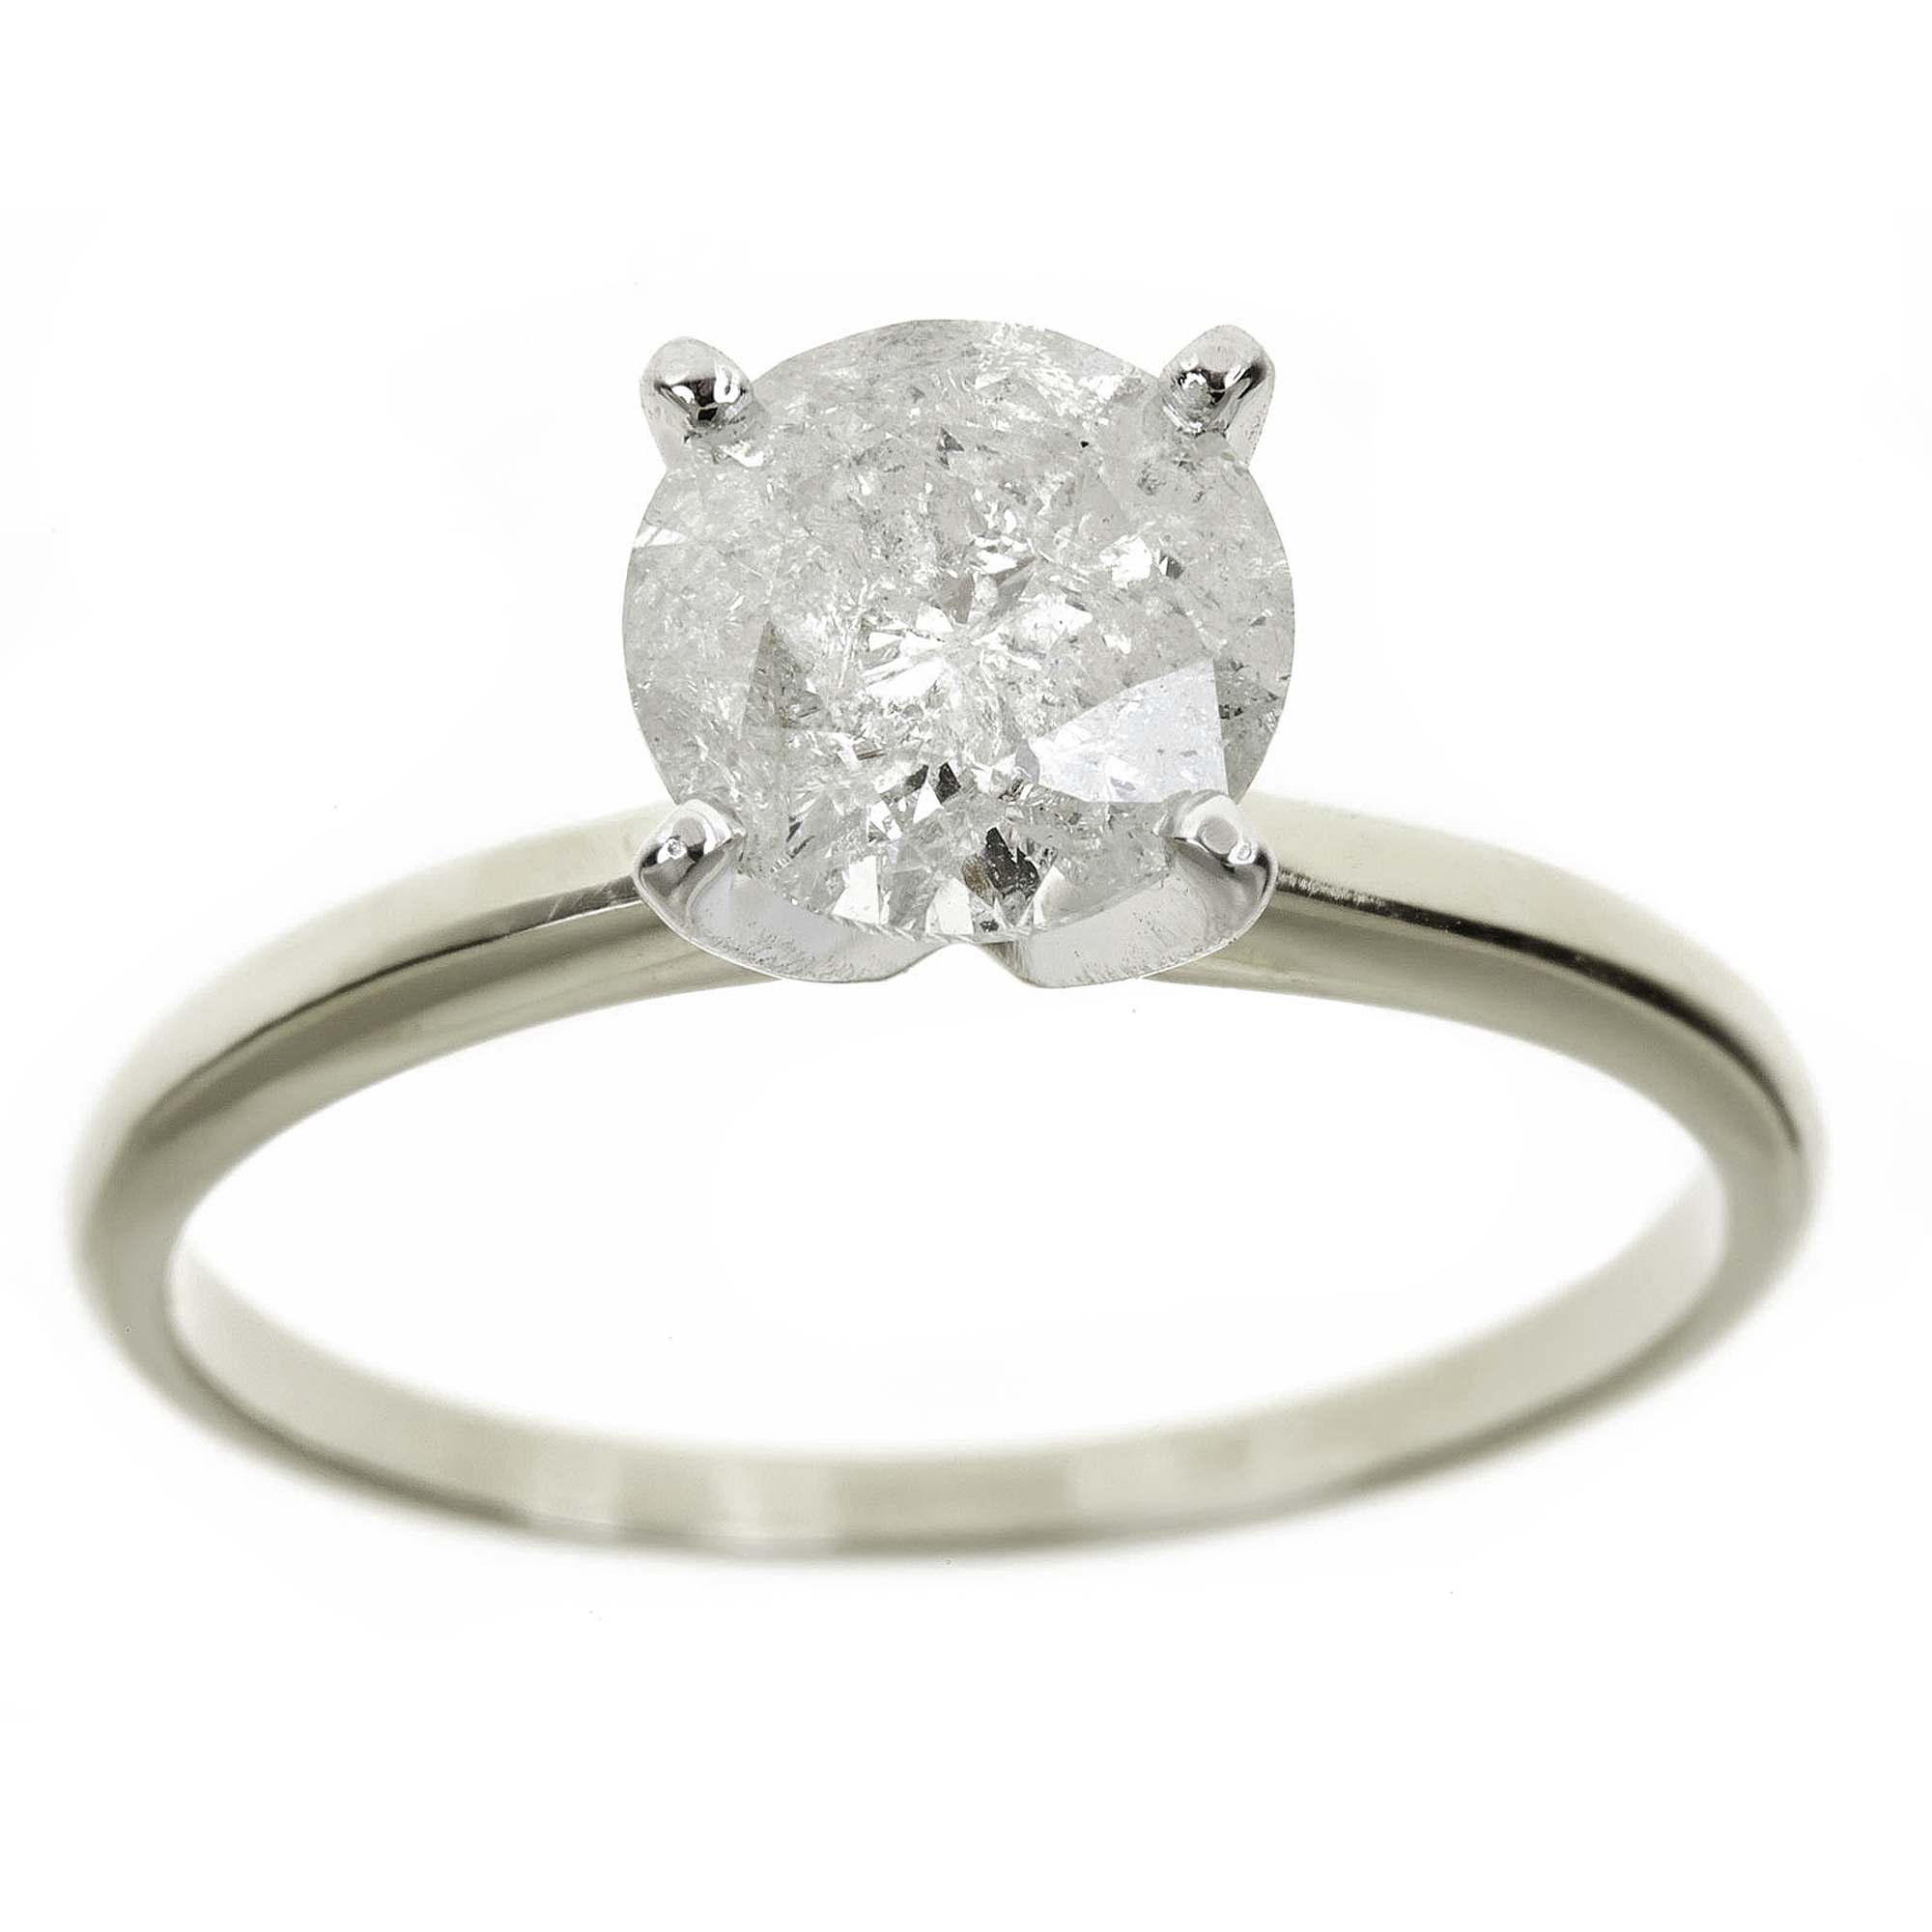 2 Carat T.W. Genuine Round White Diamond 14kt White Gold Solitaire Ring, IGL Certified by Generic